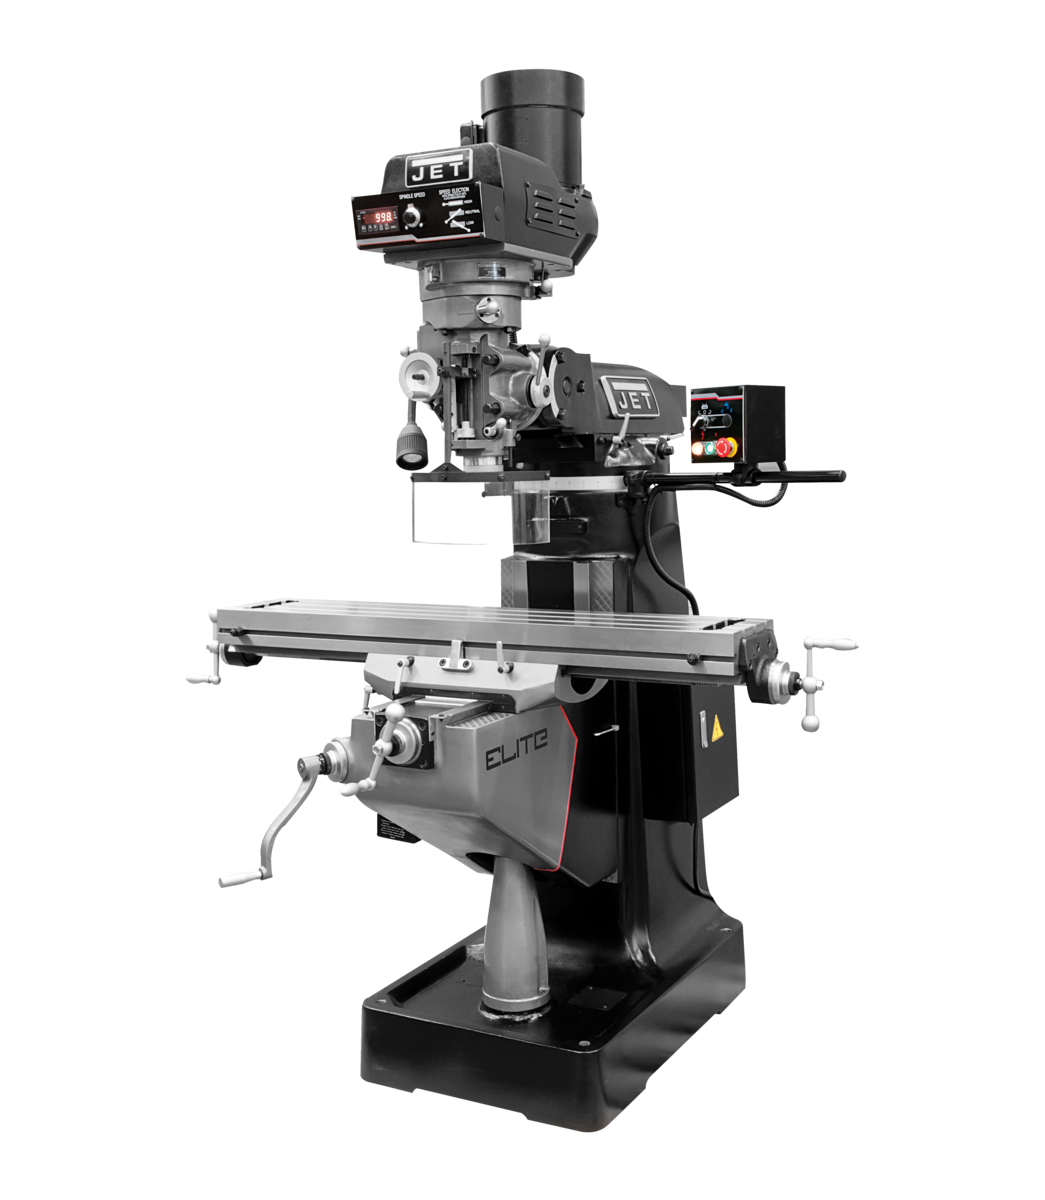 EVS-949 Mill with 3-Axis Newall DP700 (Knee) DRO and Servo X-Axis Powerfeed and USA Air Powered Draw Bar